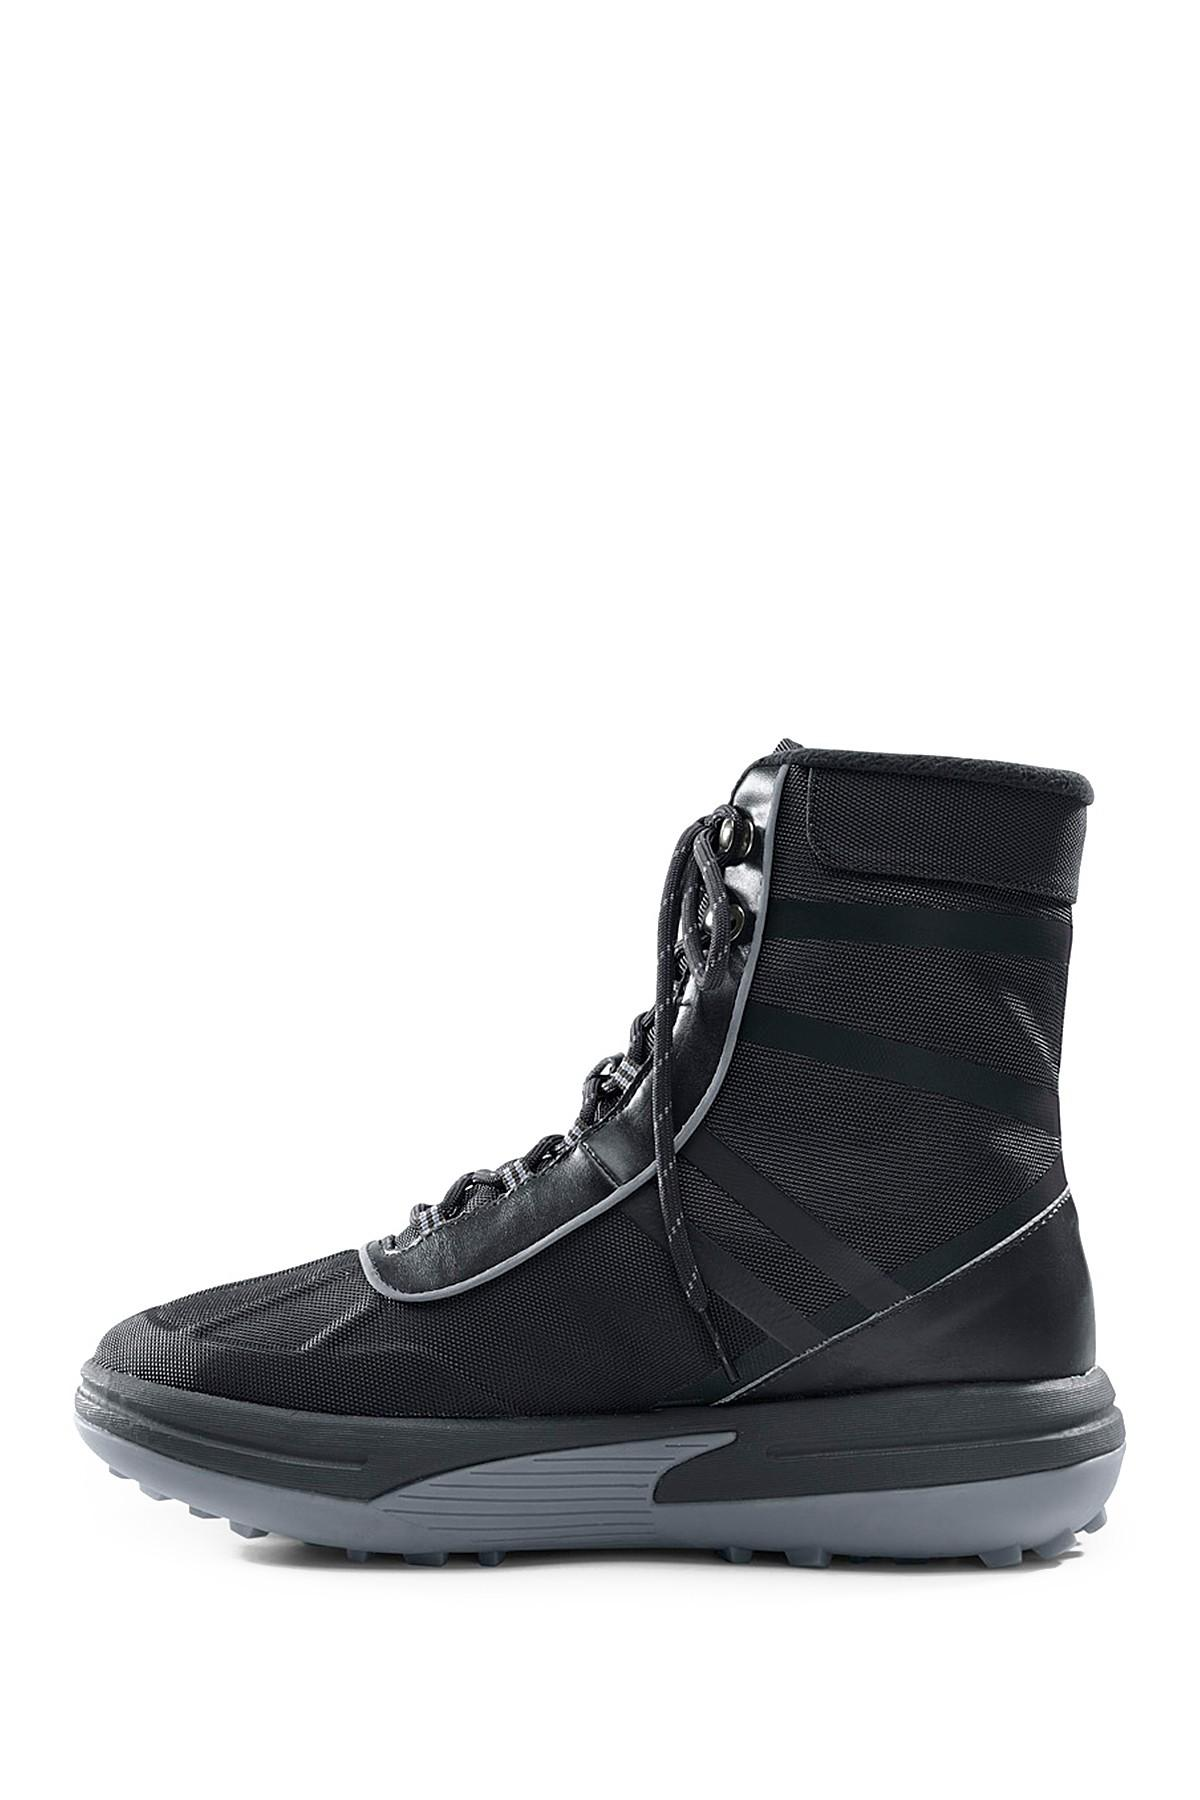 Lyst Lands End Action Waterproof Boot In Black For Men